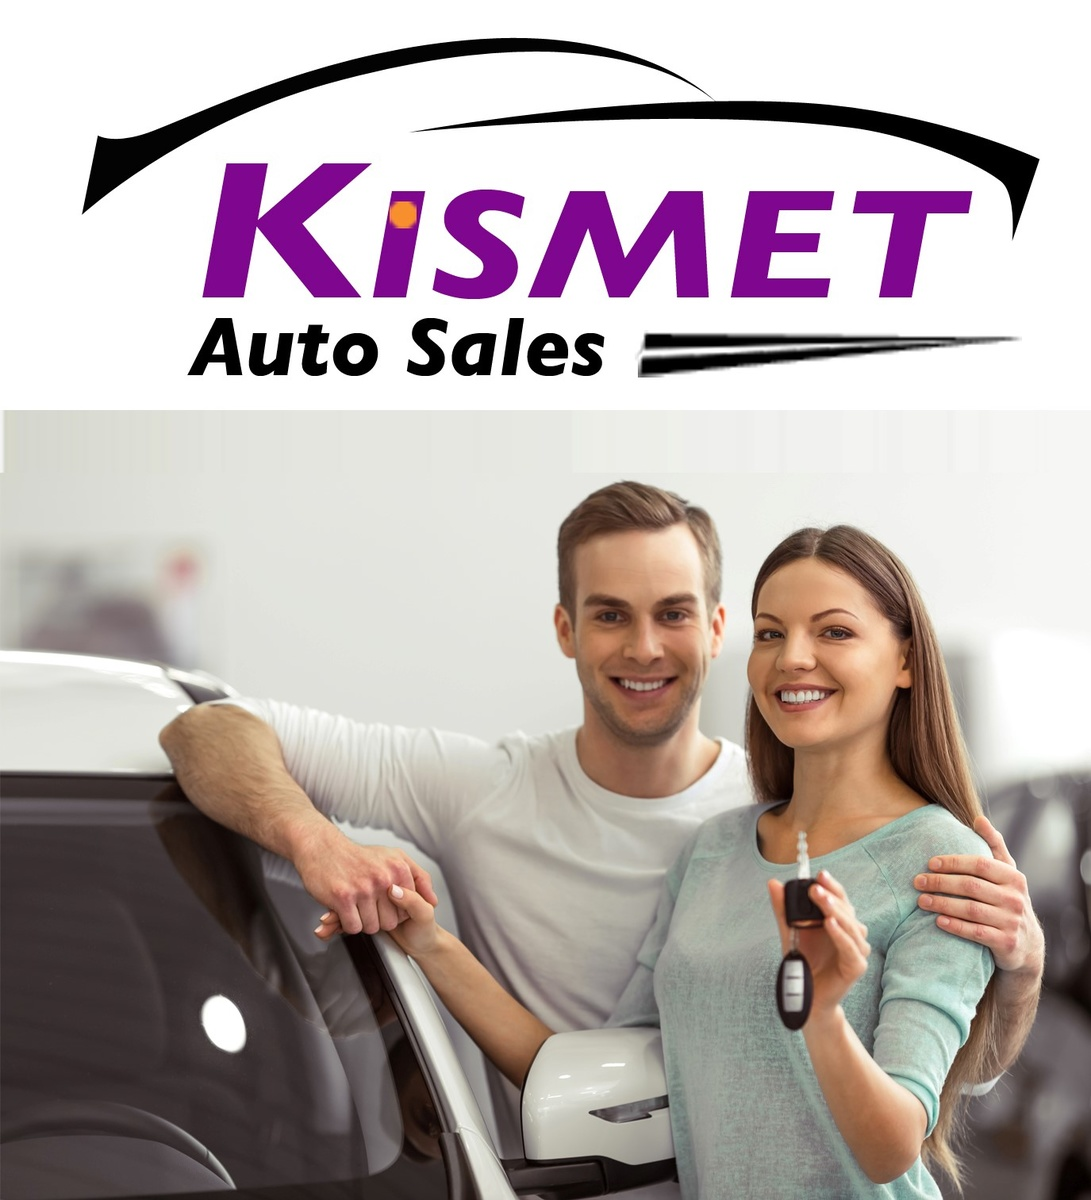 Kismet Auto Sales Llc Spring Hill Fl Read Consumer Reviews Browse Used And New Cars For Sale